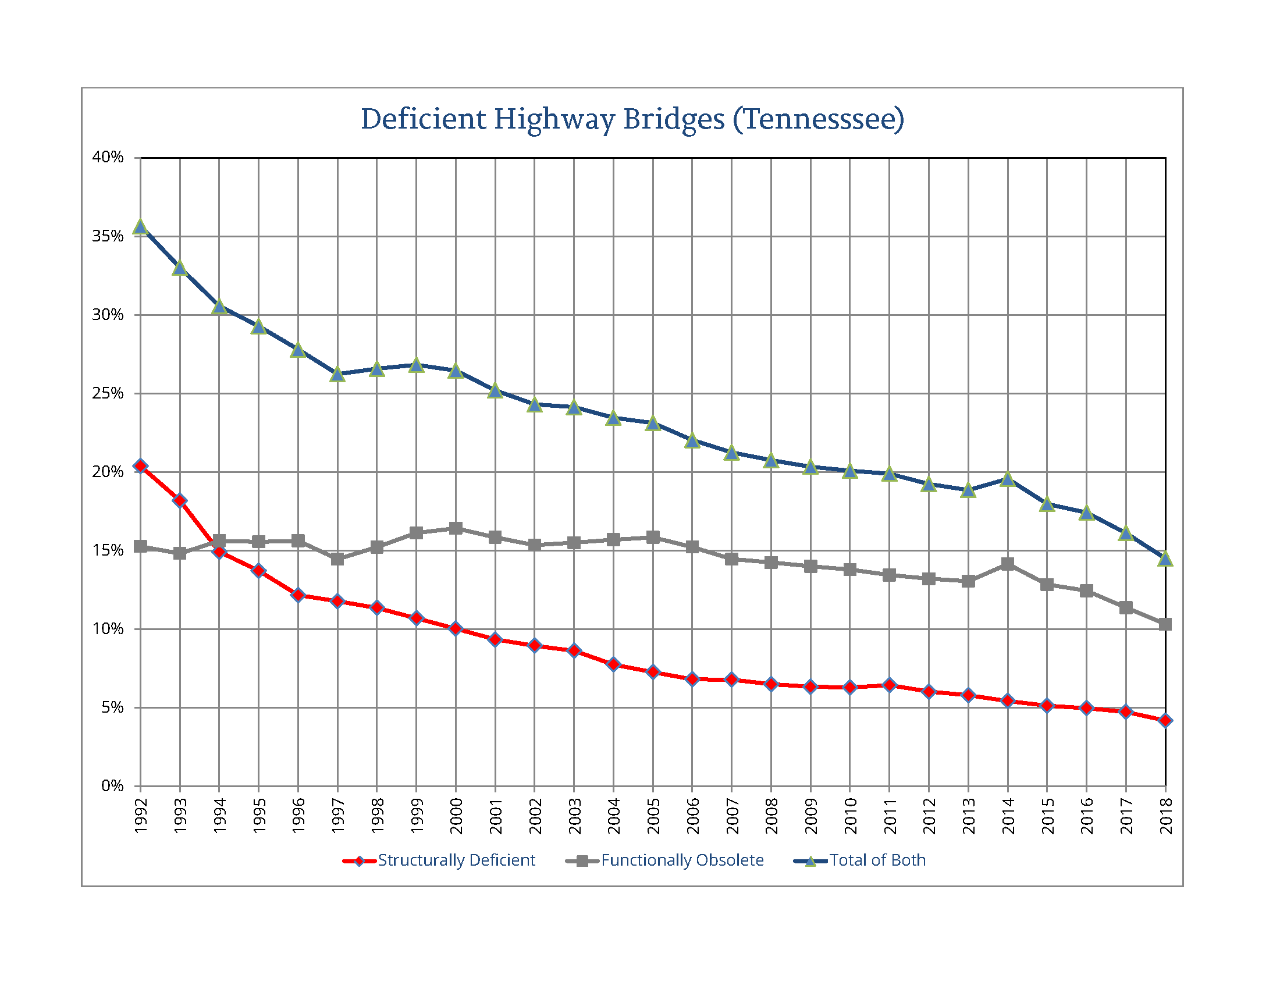 graph representing the number of deficient highway bridges in Tennessee